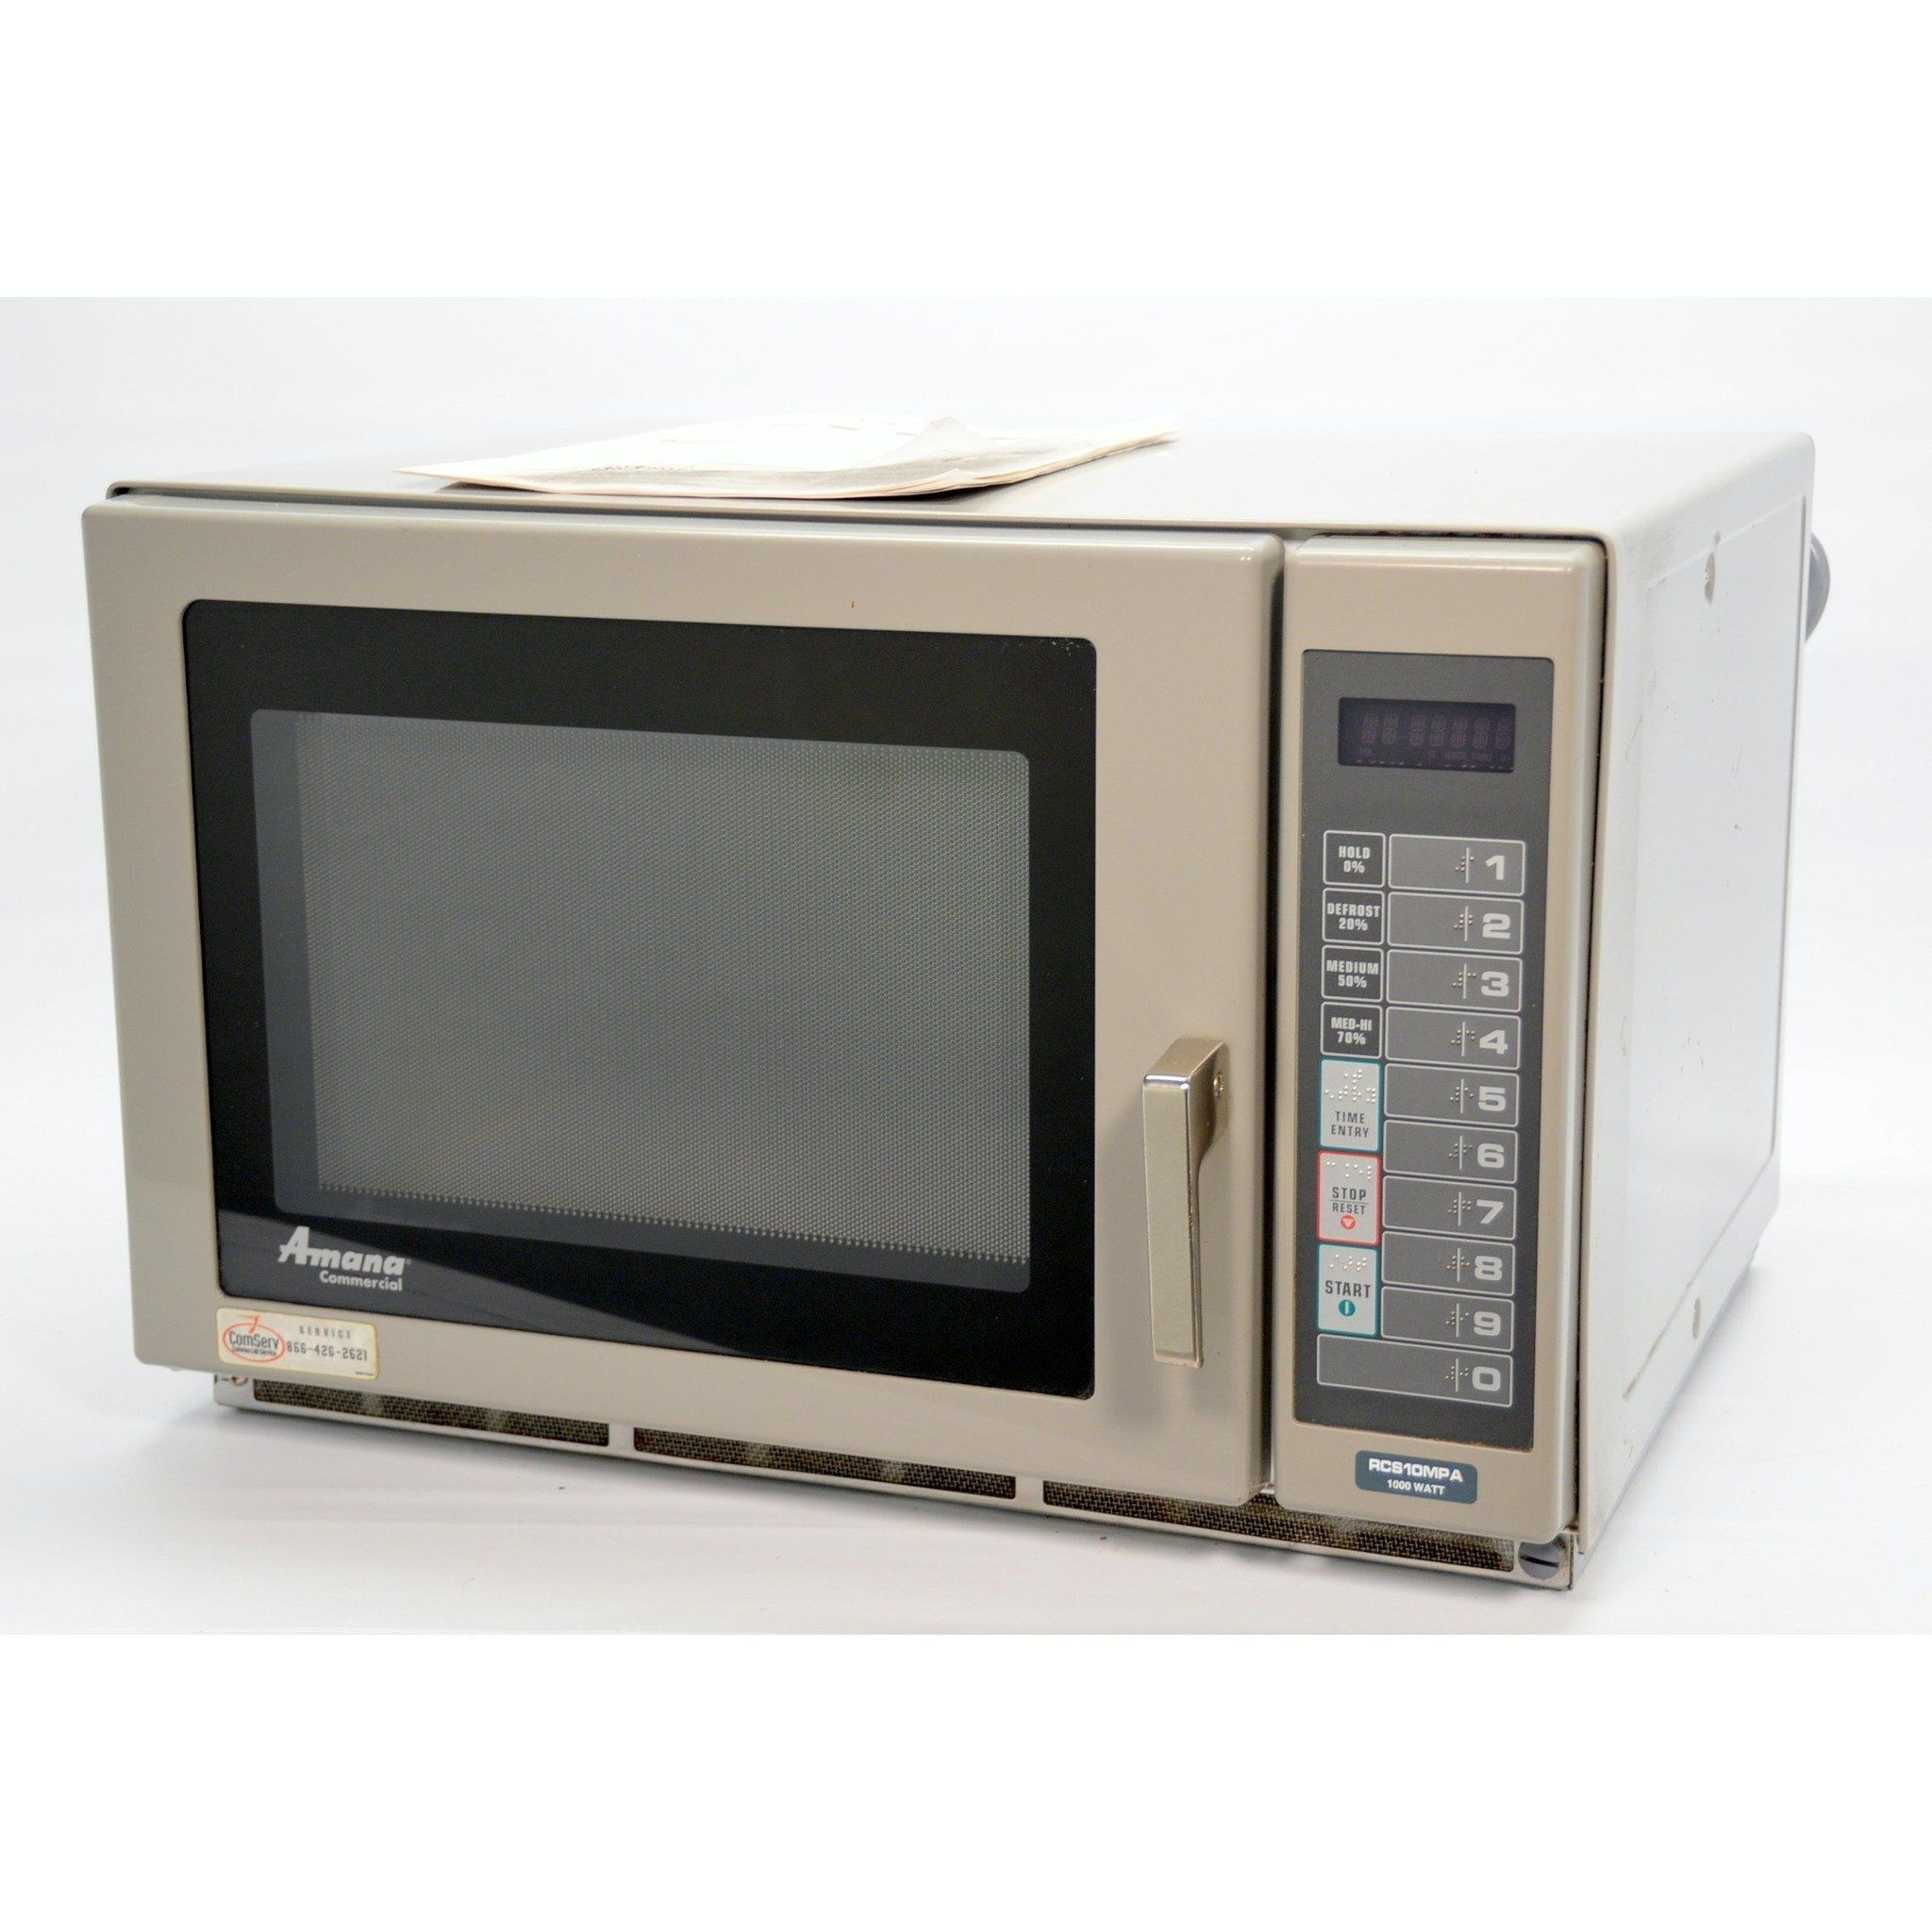 Amana Rcs10mpa 1000w Commercial Countertop Microwave Oven Medium Volume 120v